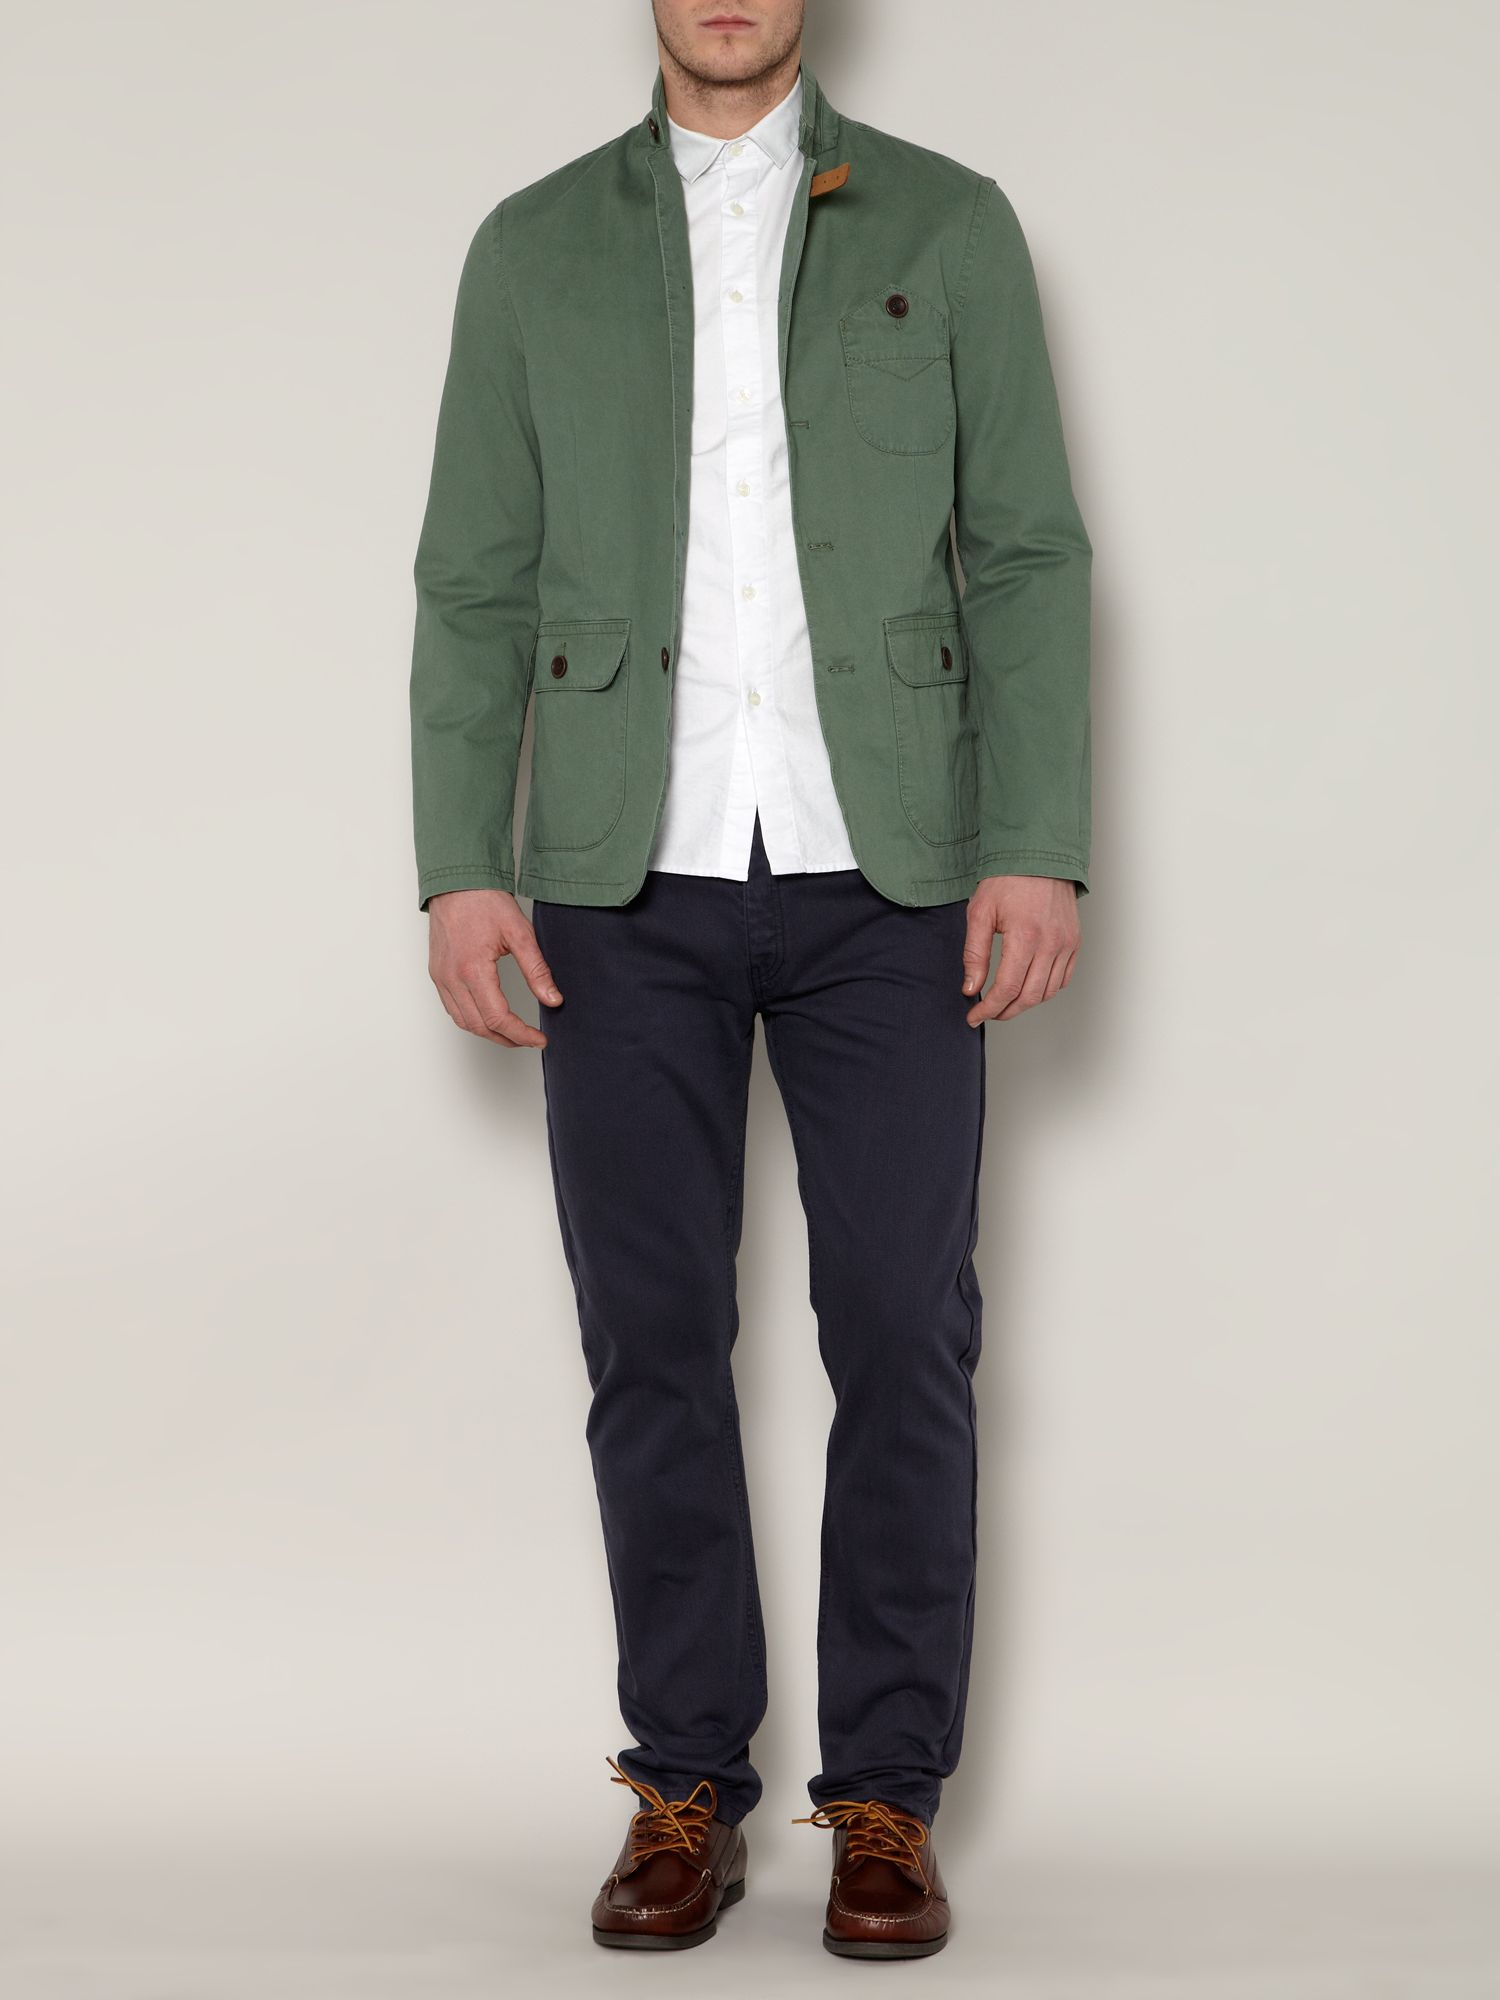 Collie cotton twill light jacket with leather tab